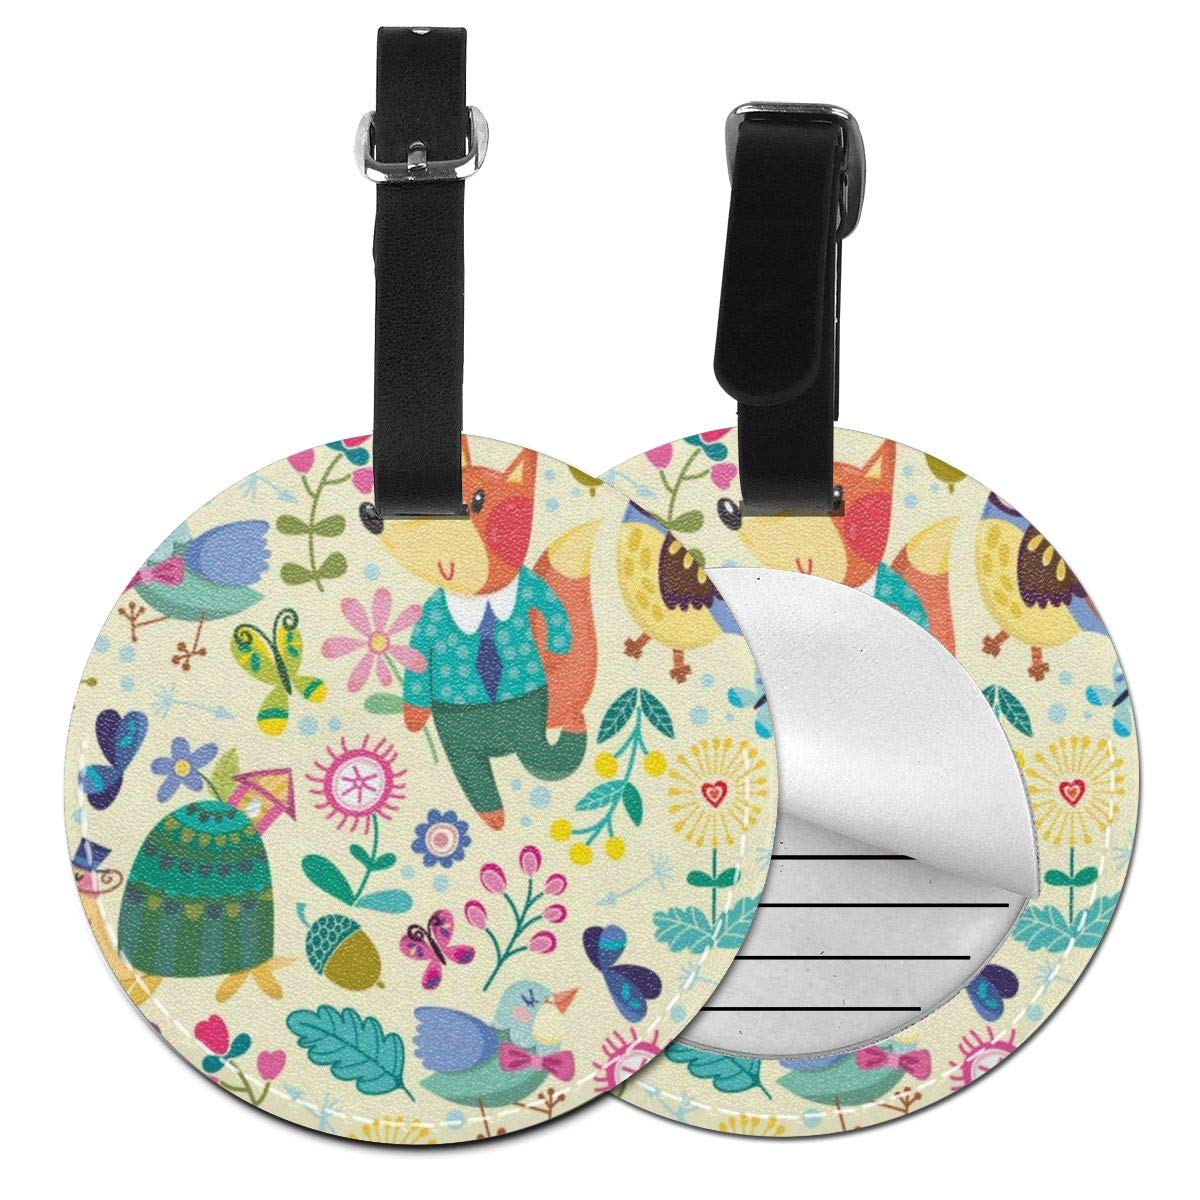 Round Luggage Tags Cute Floral Flowers Rabbit Easter Eggs Spring Summer Travel Accessories Suitcase Name Tags